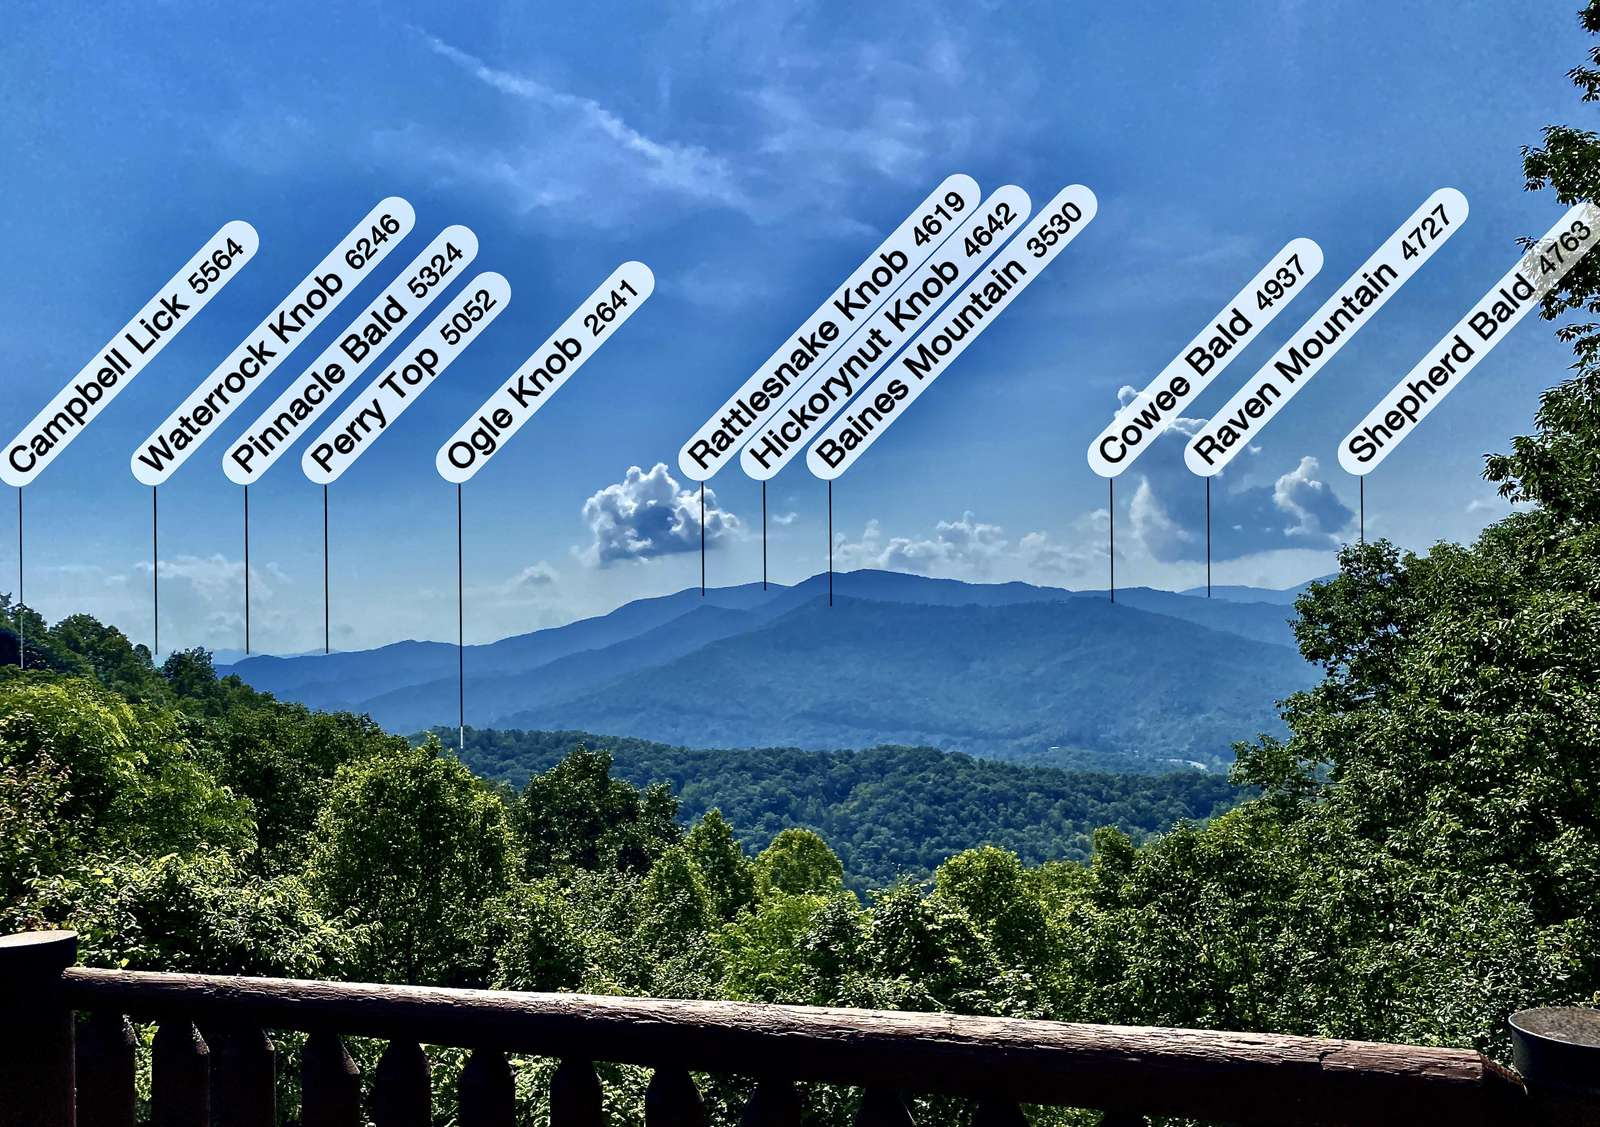 Just a few of the Mountain Ranges you will view while relaxing on the deck